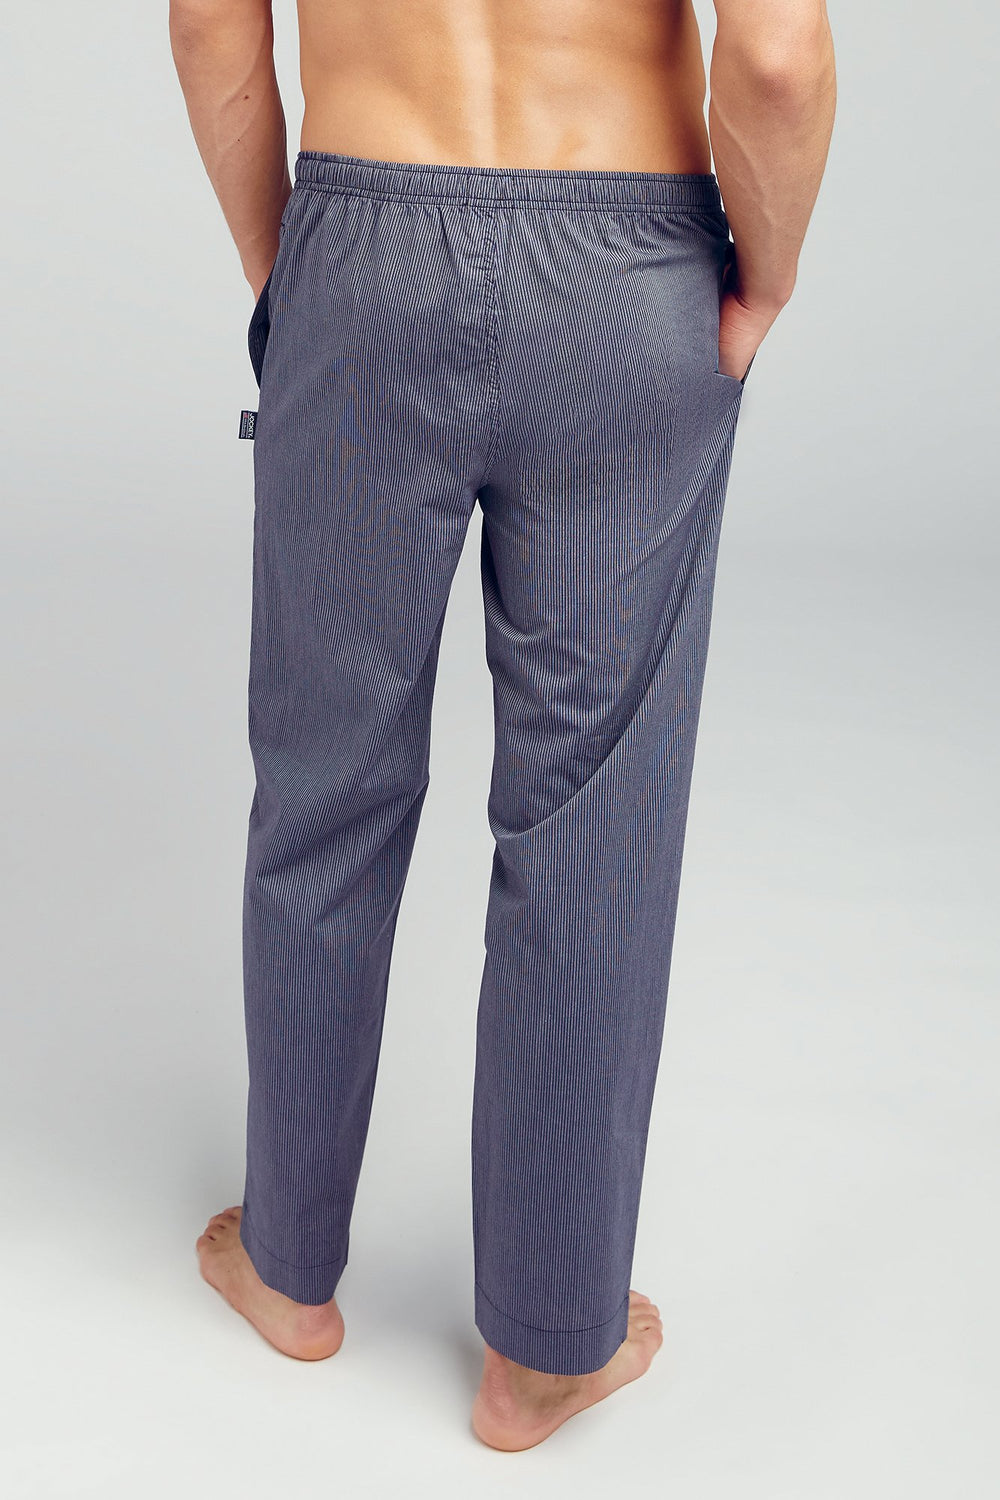 Jockey® Everyday Pant Woven